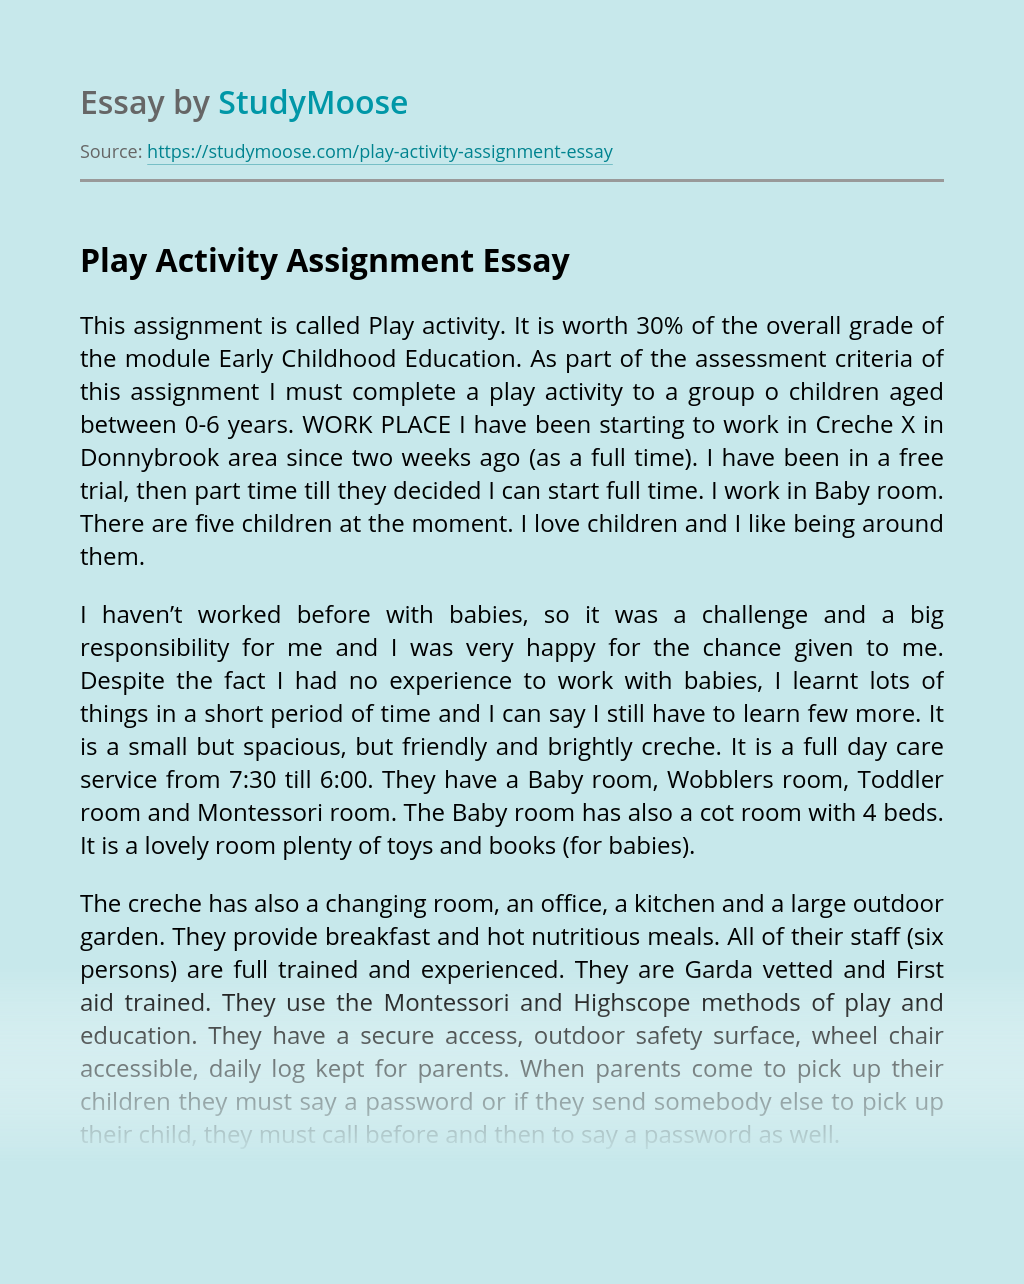 Play Activity Assignment